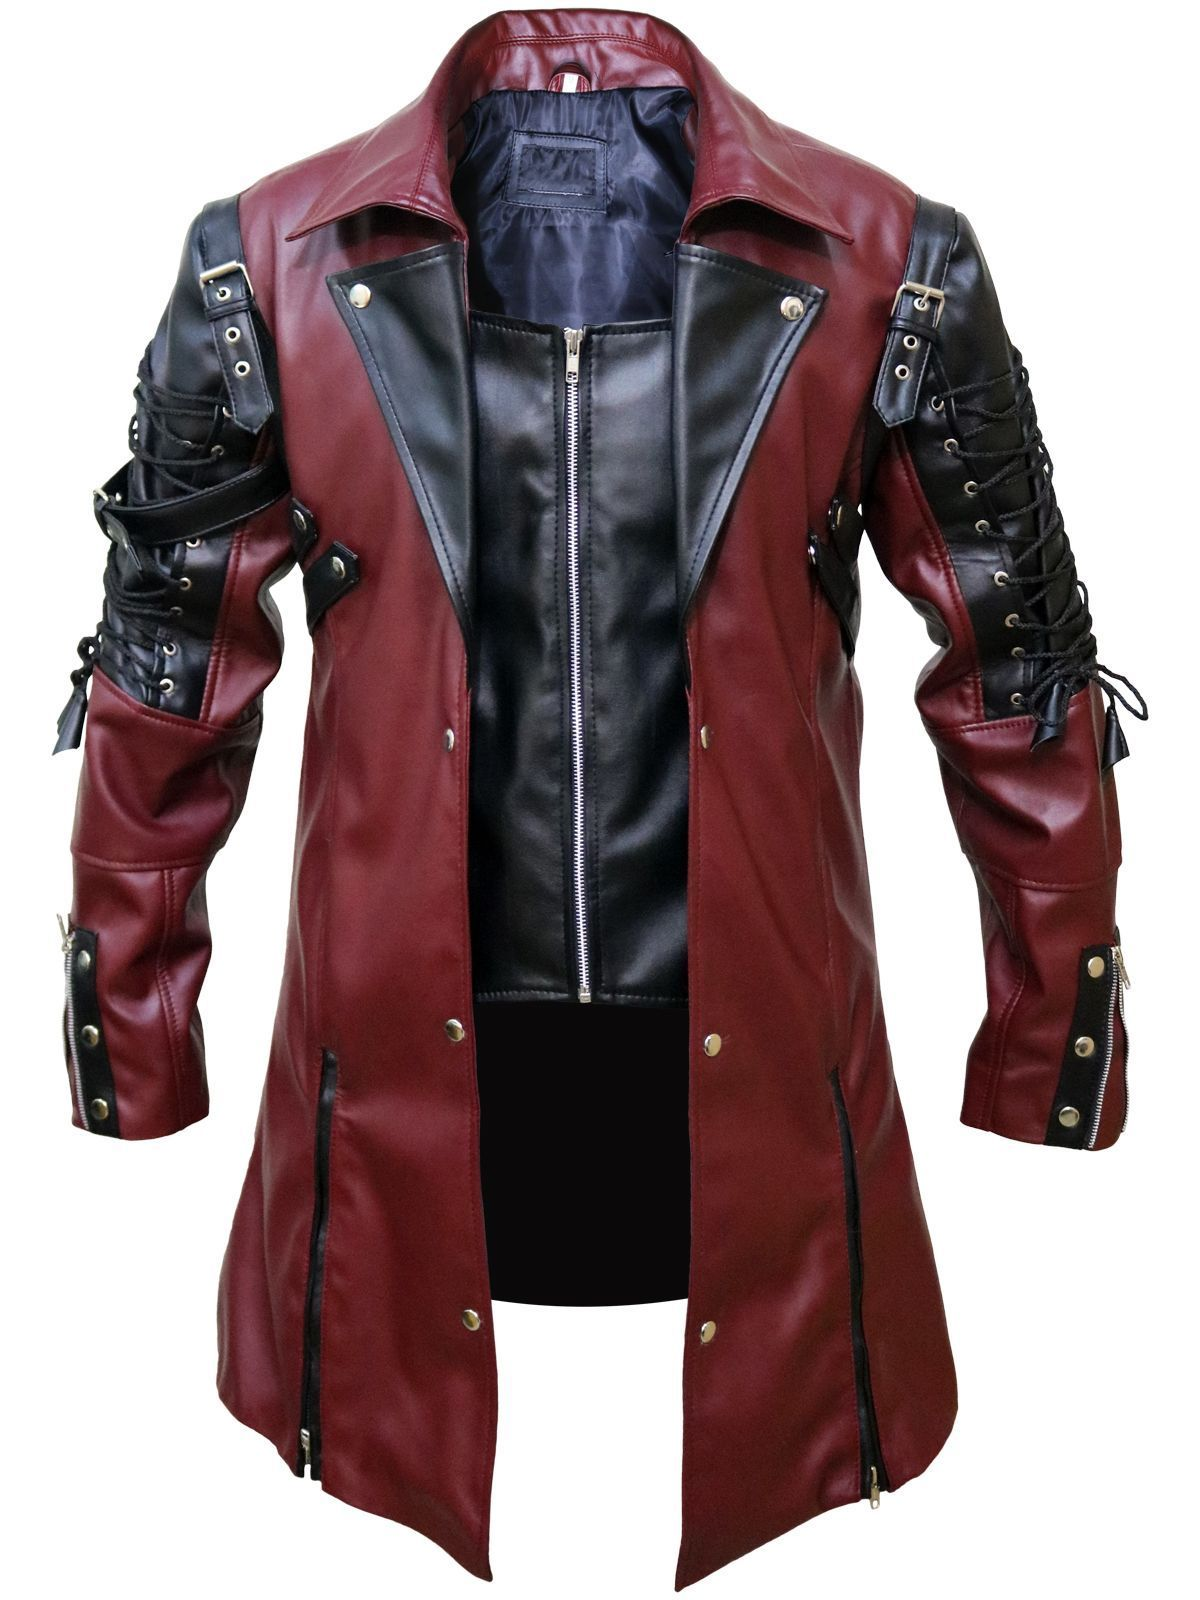 3586851cec0964 Steampunk Jacket crafted by the Jasperz in Real Leather, inspired from The  Punk Style Goth Coats and Jackets highly demanding for Halloween event as a  ...